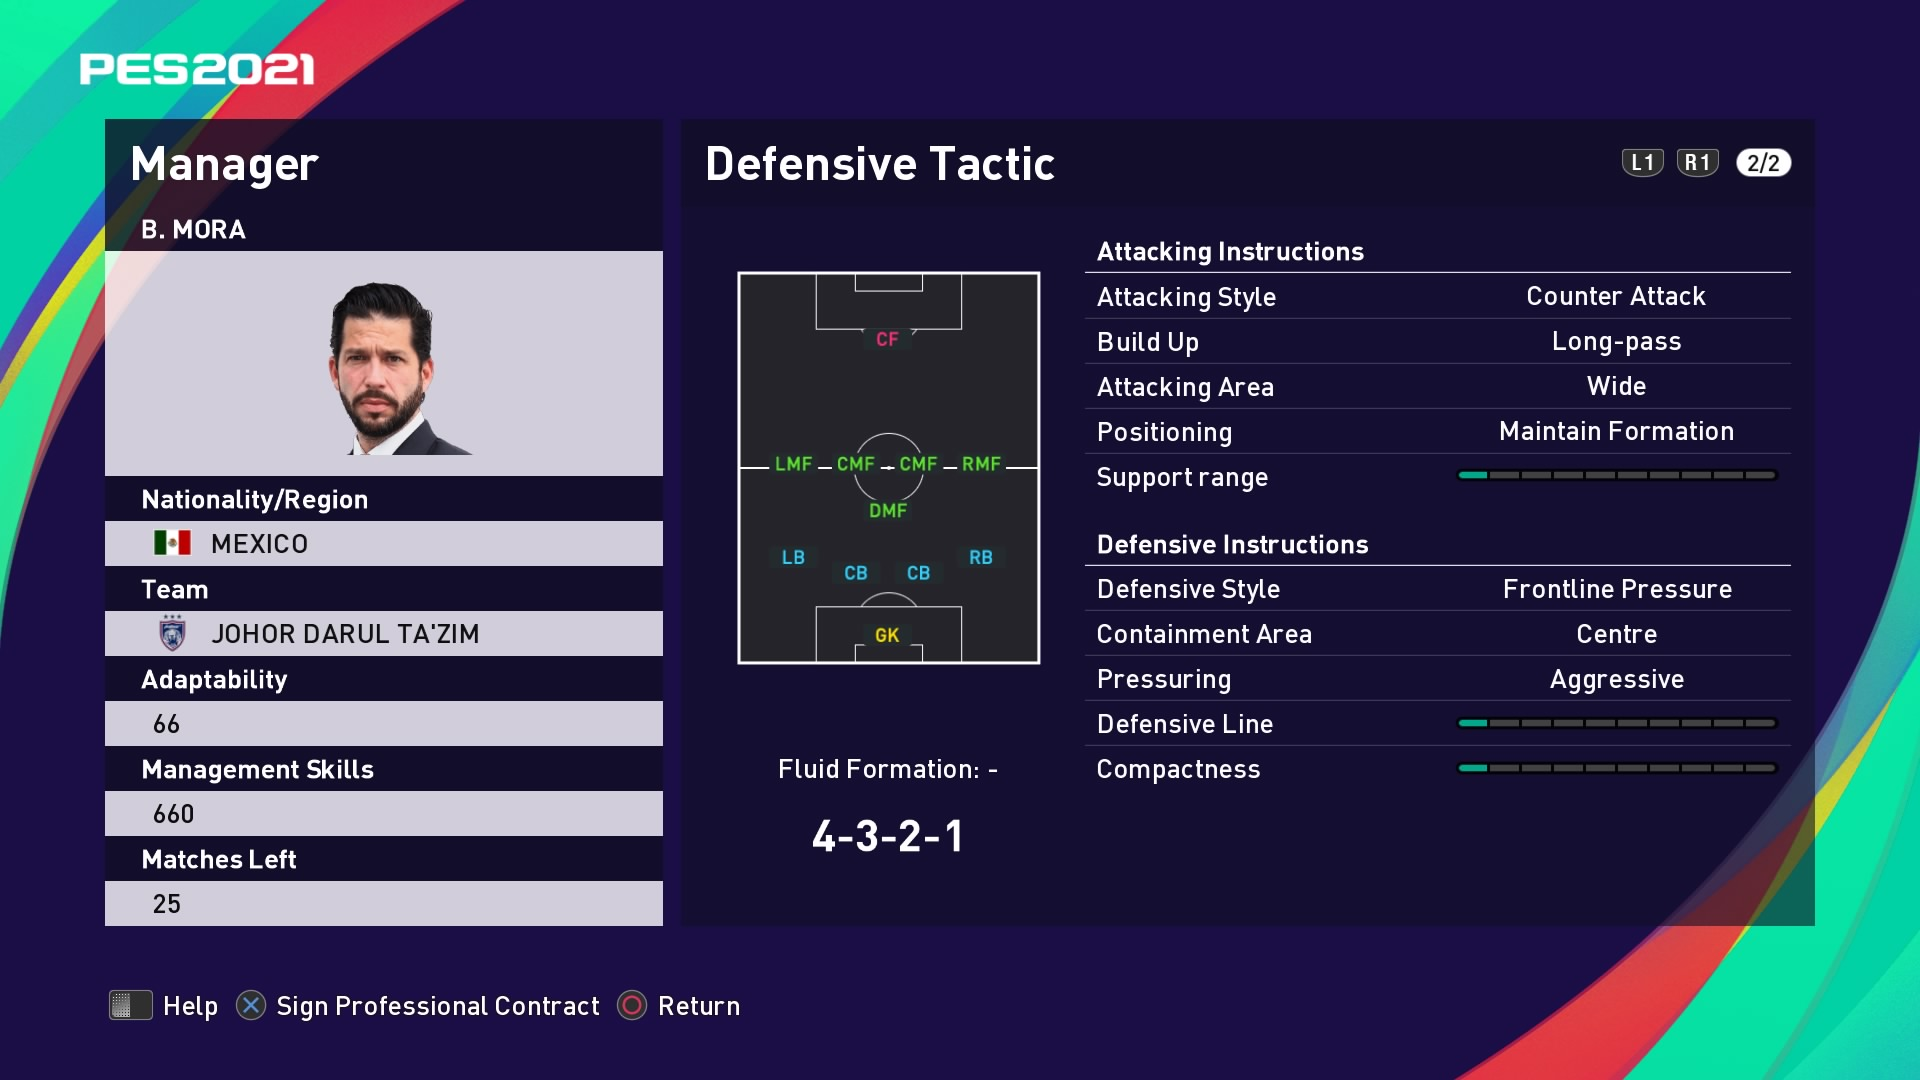 B. Mora (Benjamin Mora) Defensive Tactic in PES 2021 myClub